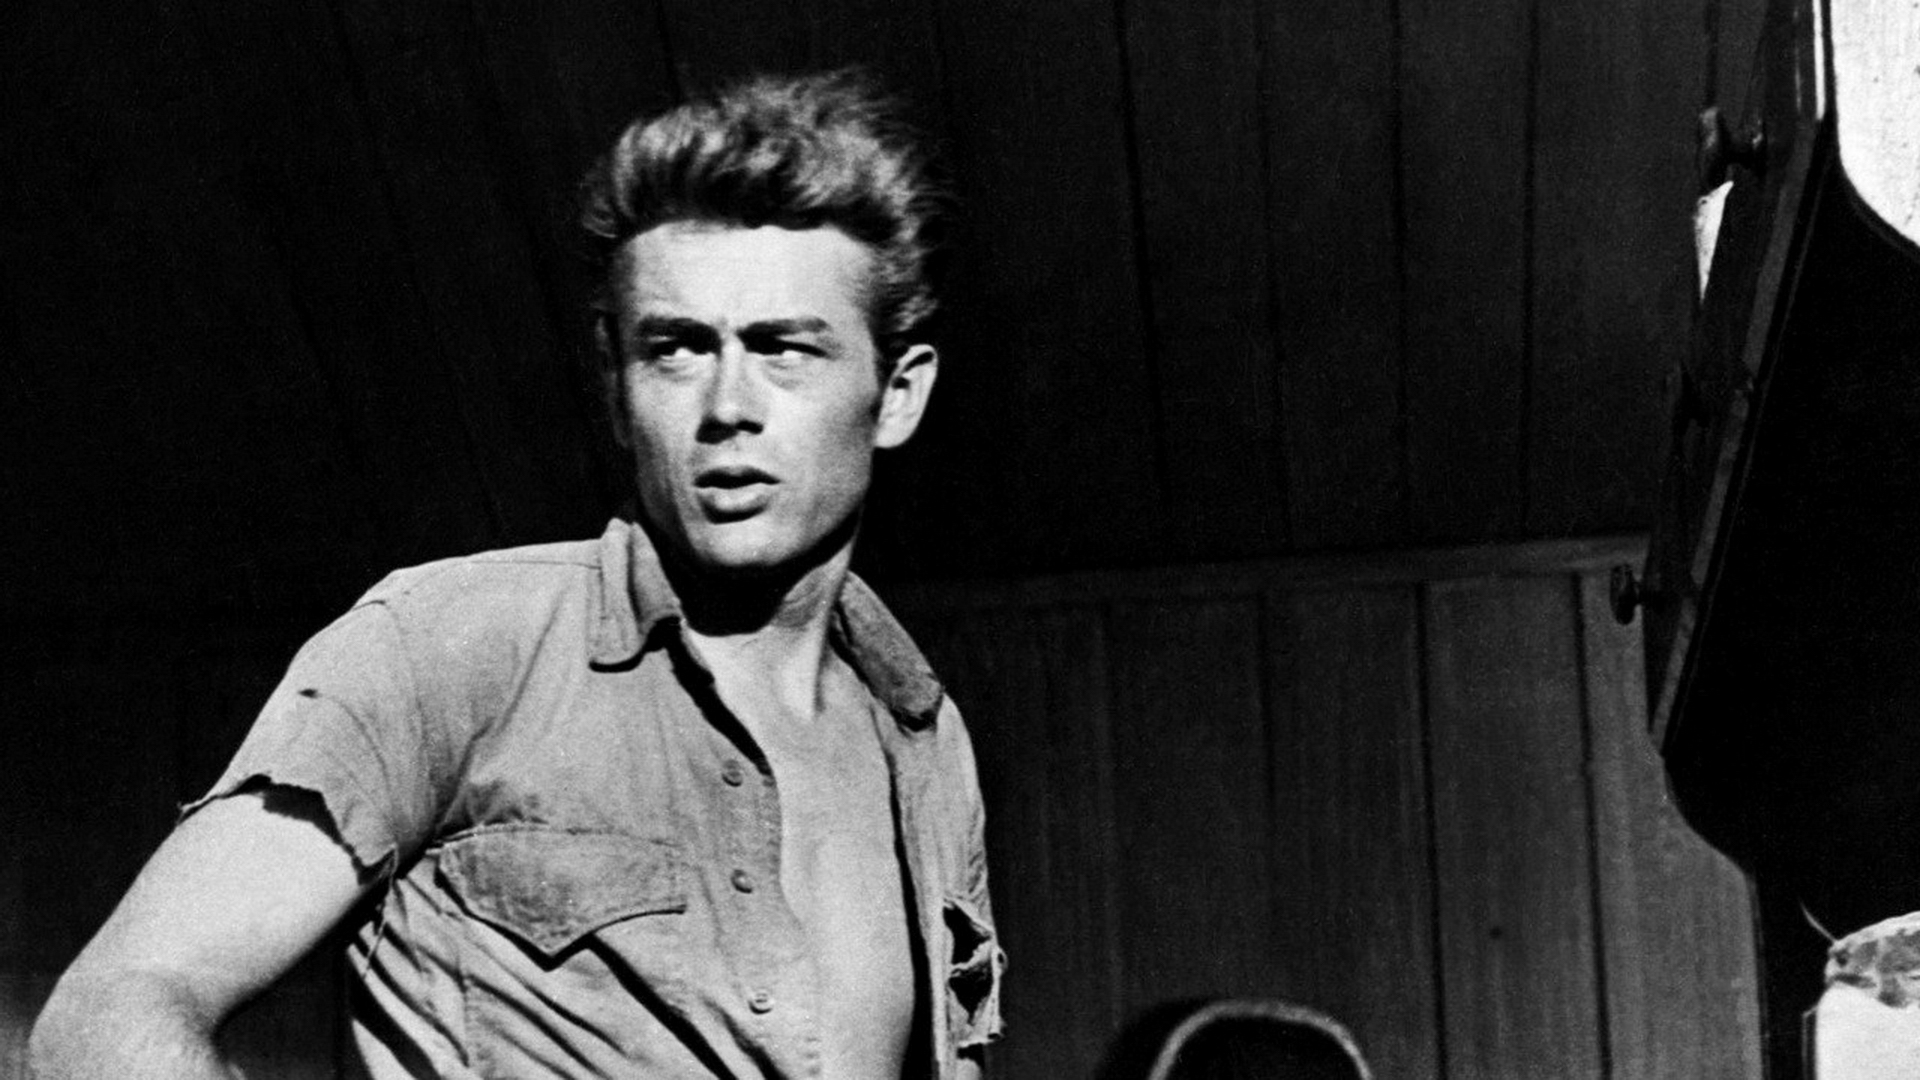 james byron dean Download this stock image: photograph of james byron dean (1931-1955)  american actor in the film 'rebel without a cause' dated 1955 - ec889m from.